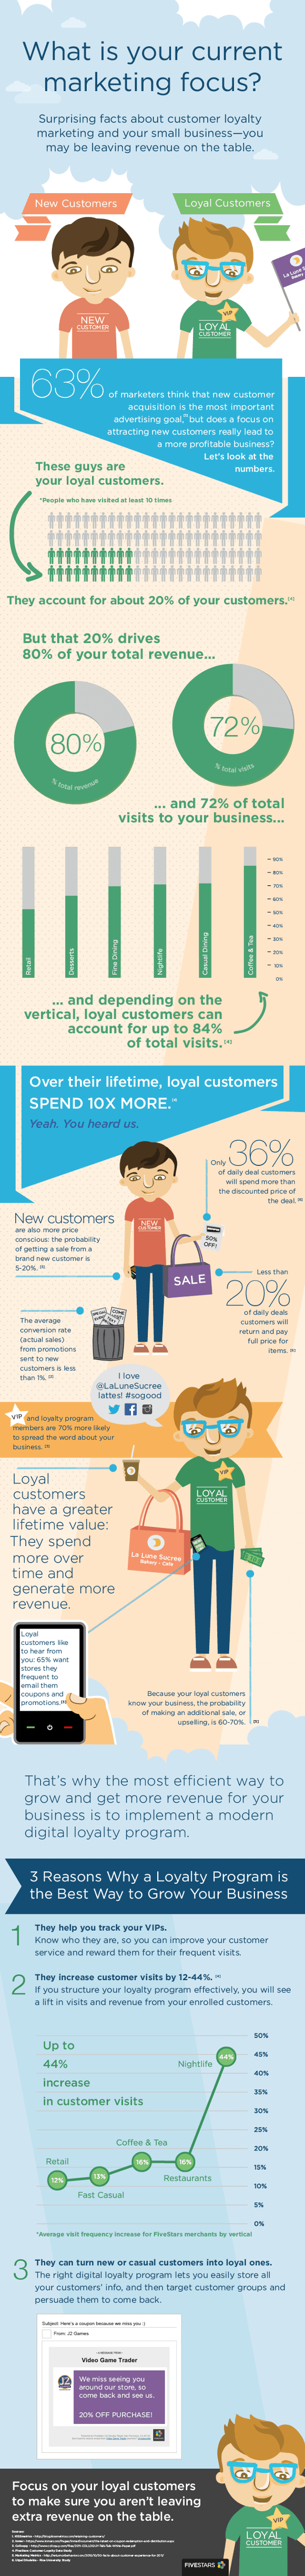 LoyalvsNewCustomer-Infographic_skal